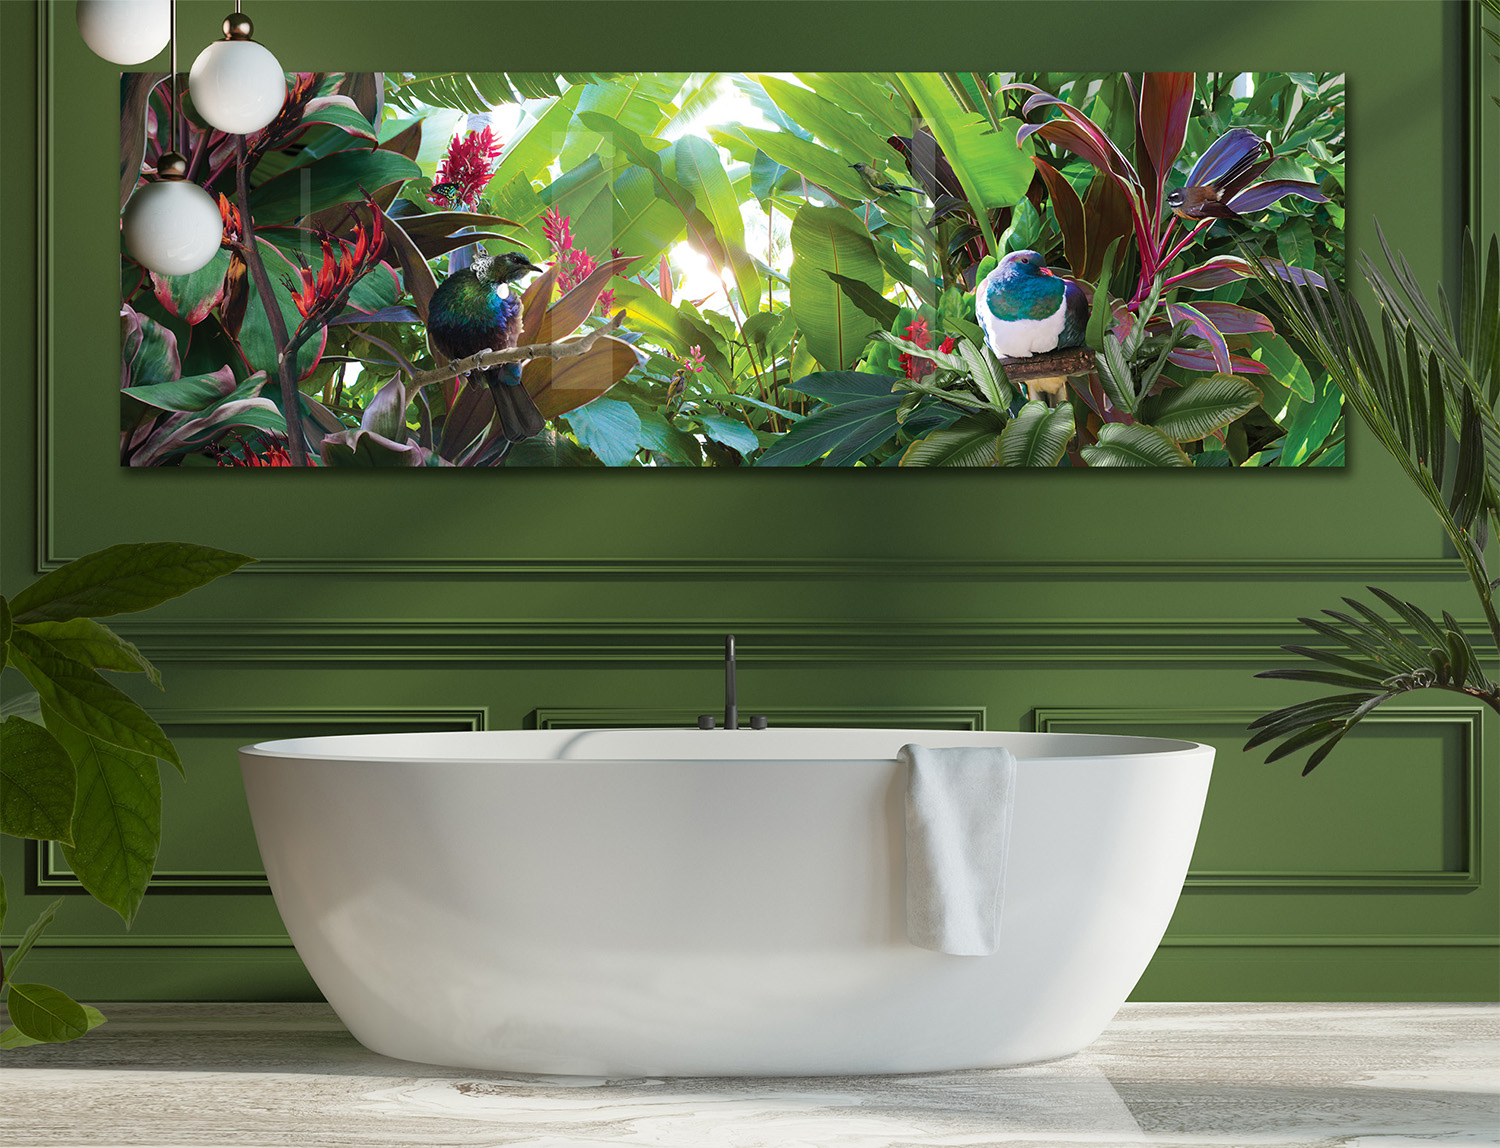 Tropical Paradise  glass wall artwork in bathroom, 2.5m long.